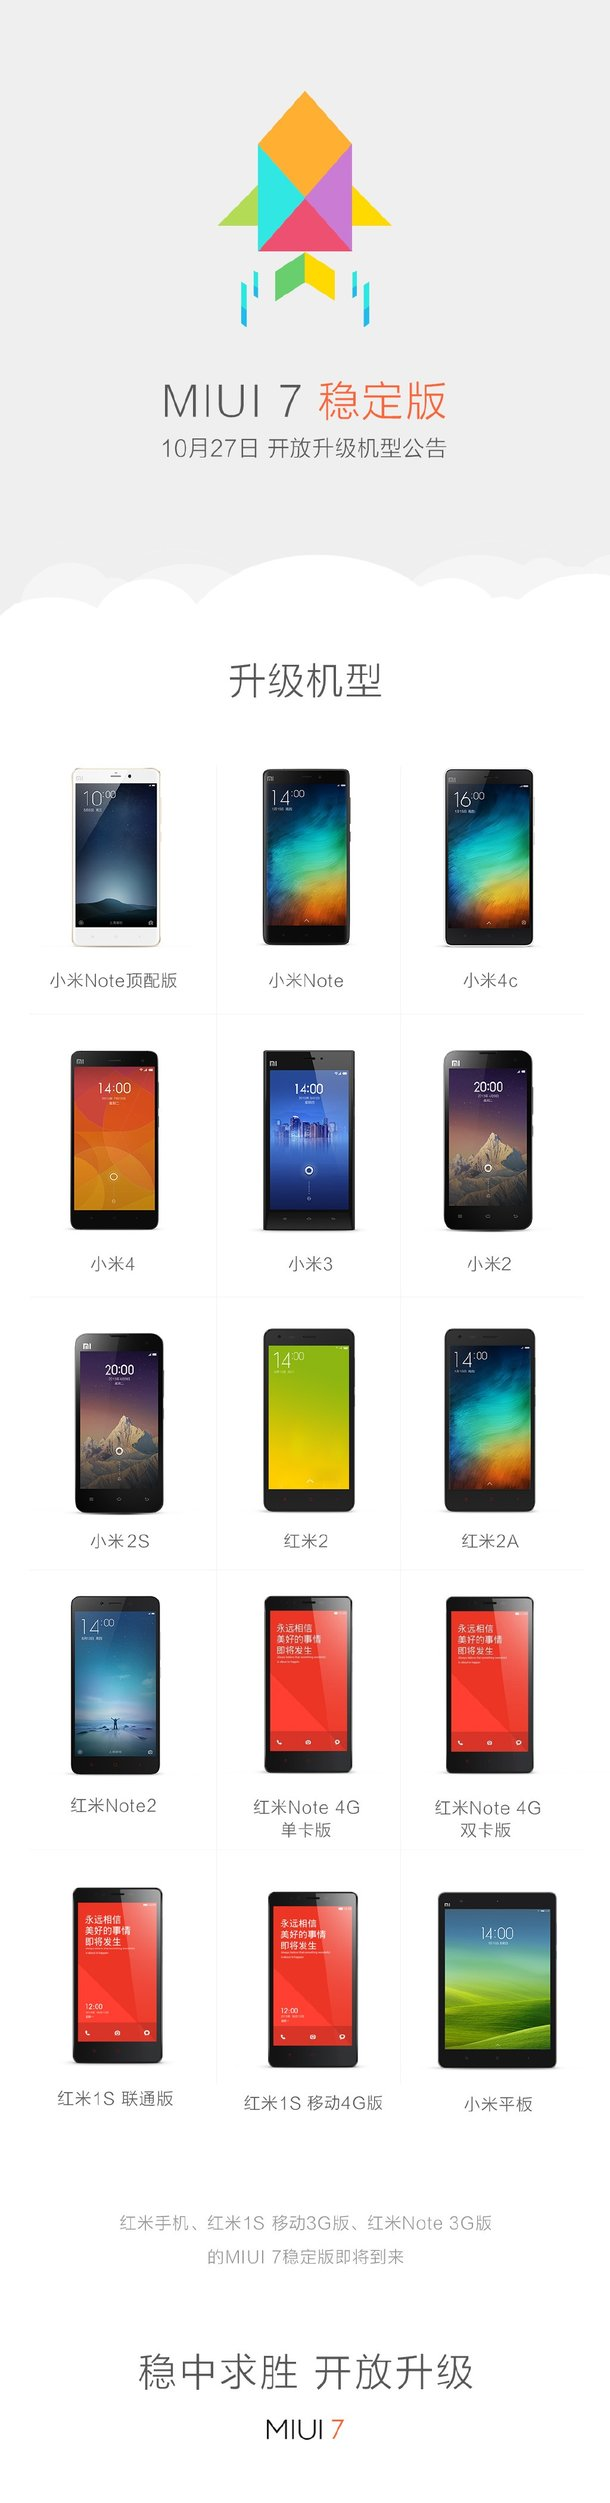 list of devices to recieve miui in future